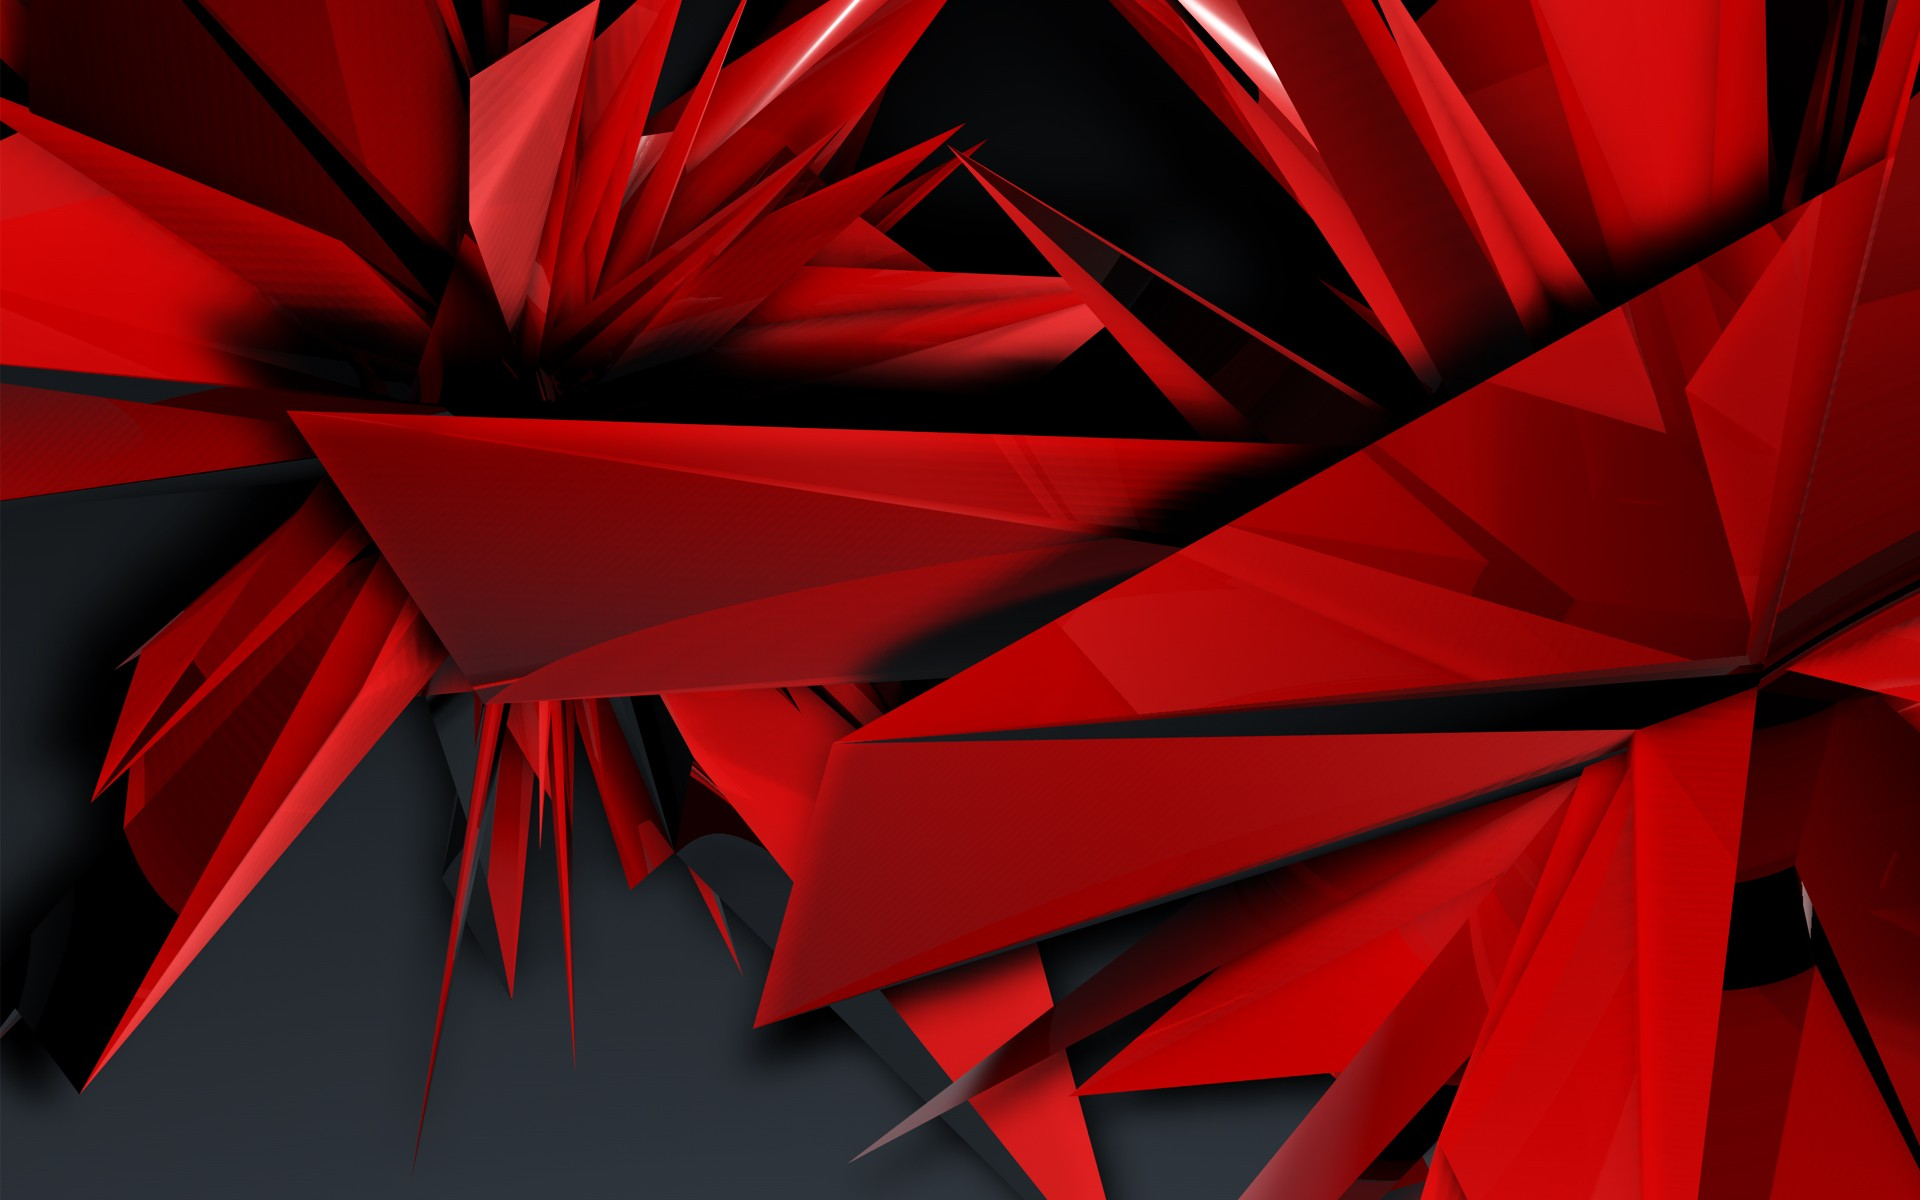 Abstract Red Wallpaper 1920x1200 Abstract Red Artwork 1920x1200